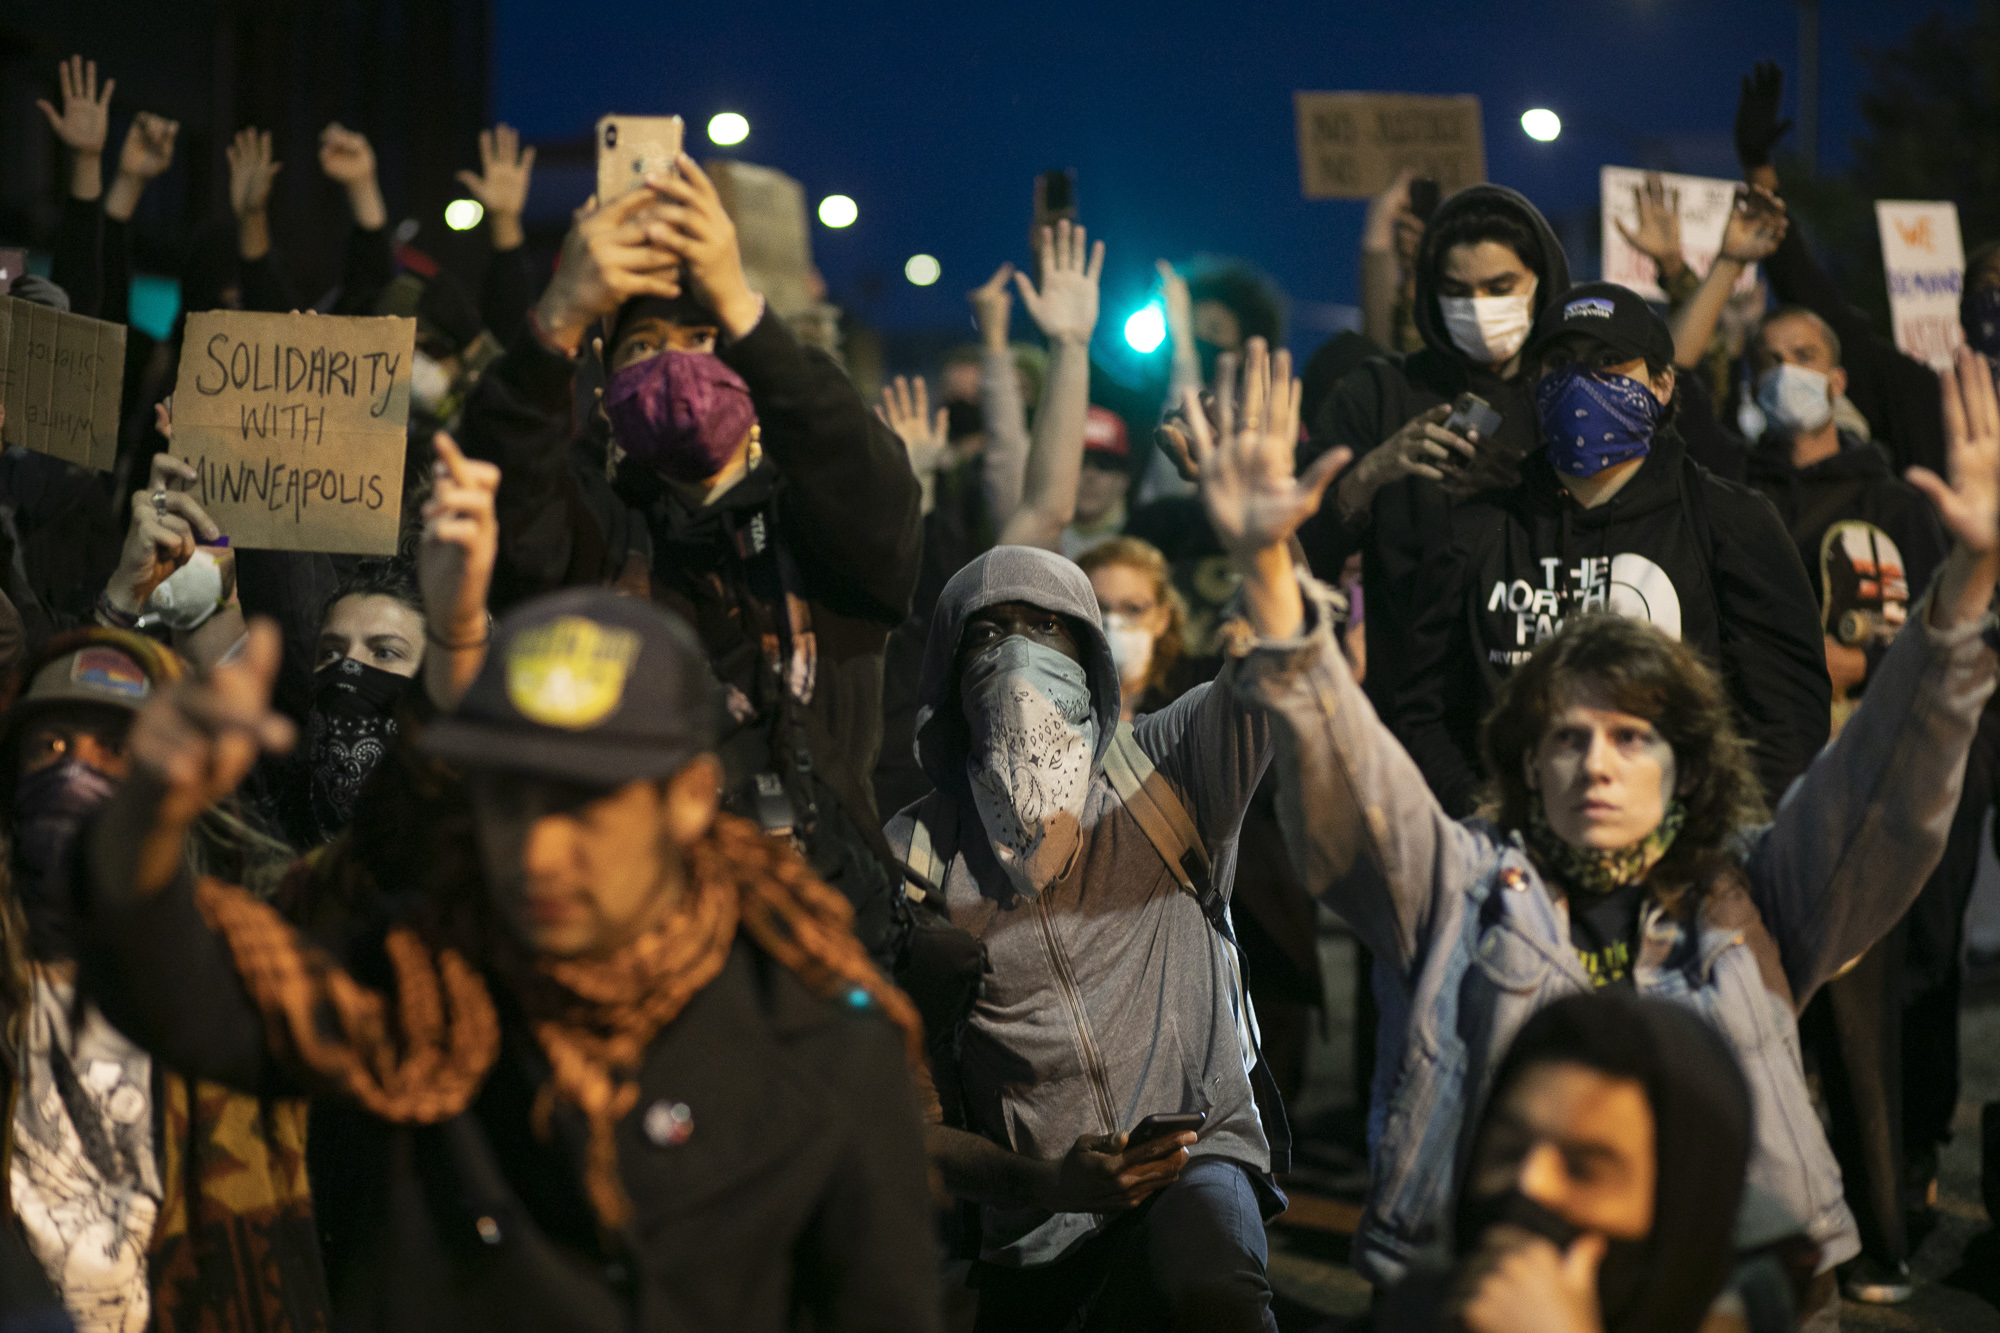 A crowd kneels with their hands up facing a police line during a demonstration Downtown Oakland on May 29, 2020. Thousands took to the streets Friday night in solidarity with protesters in Minneapolis against the killing of George Floyd by Minneapolis police earlier this week. Photo by Anne Wernikoff for CalMatters